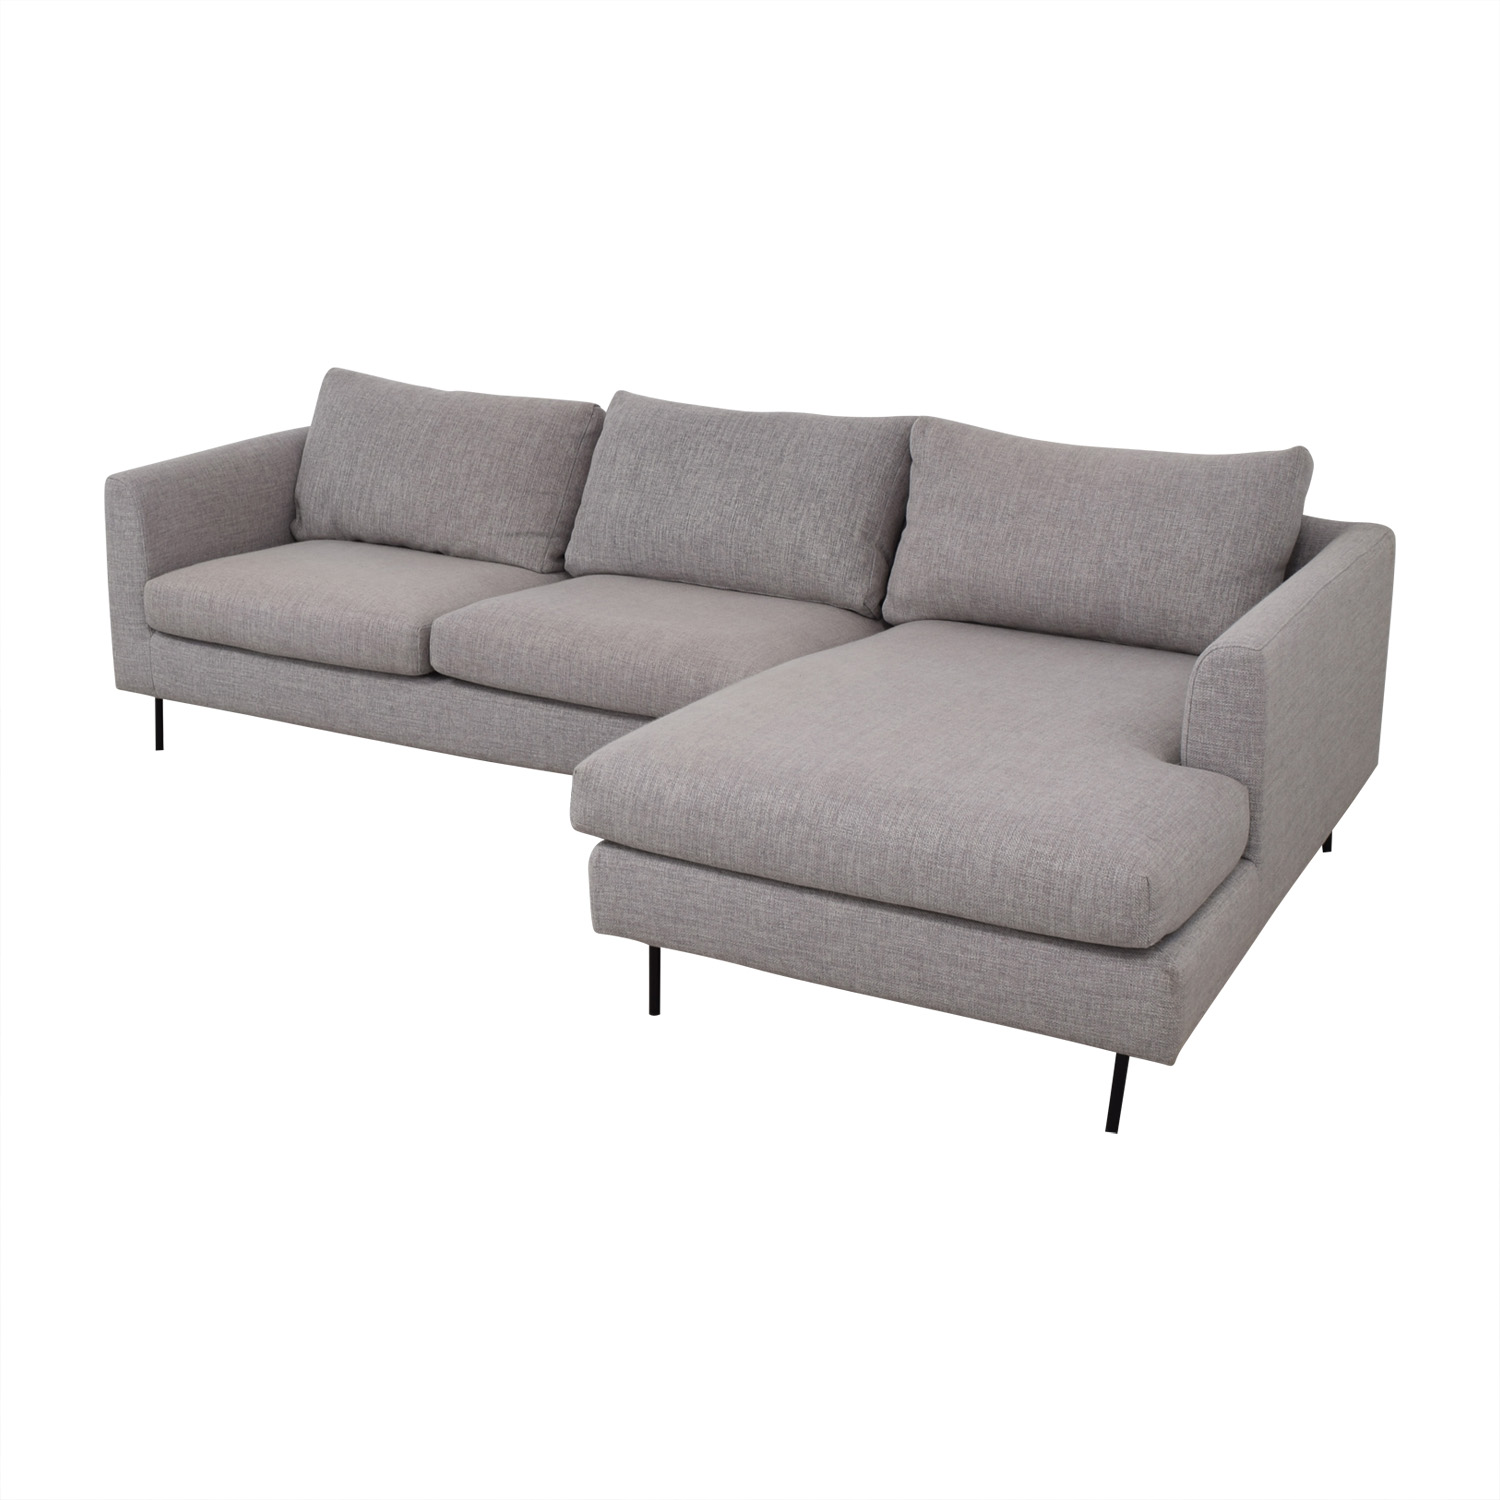 Interior Define Interior Define Owens Grey Right Chaise Sectional dimensions